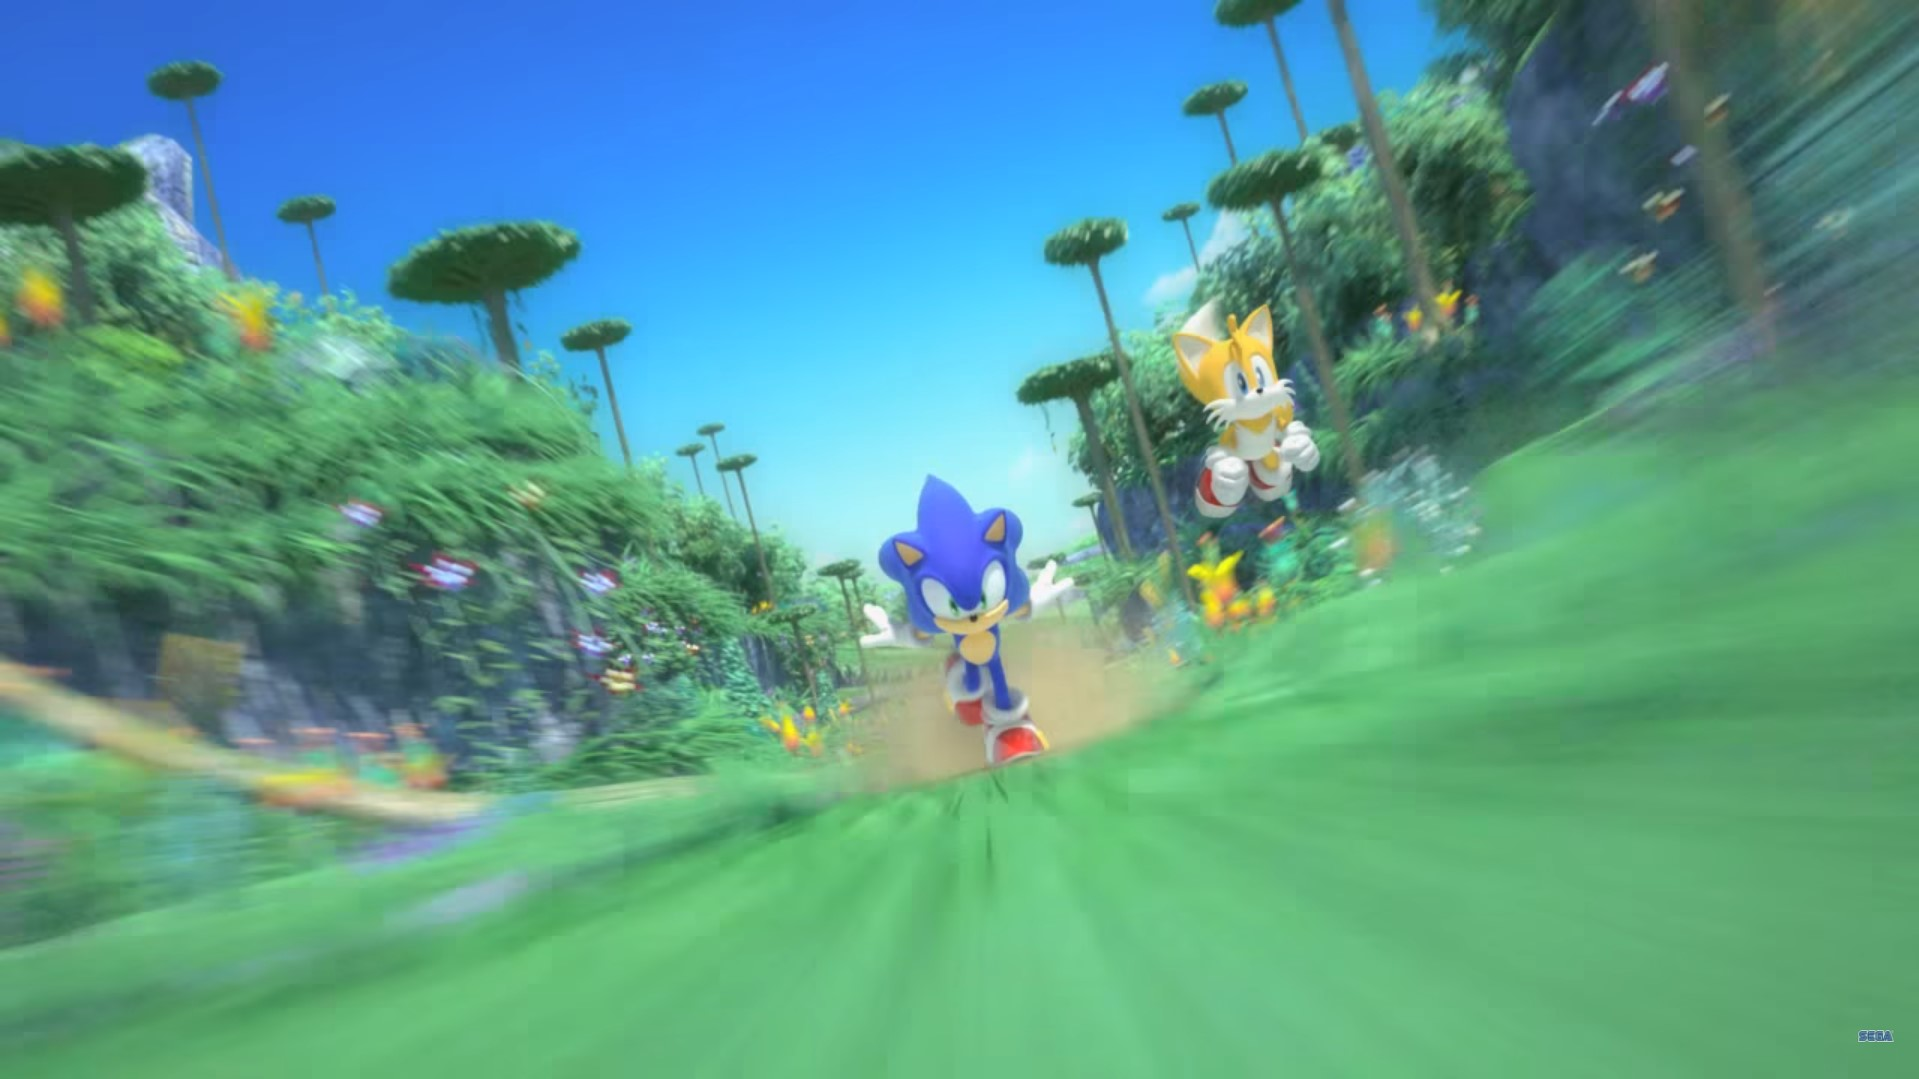 Sega says that the new Sonic reveal is going to take a bit longer screenshot